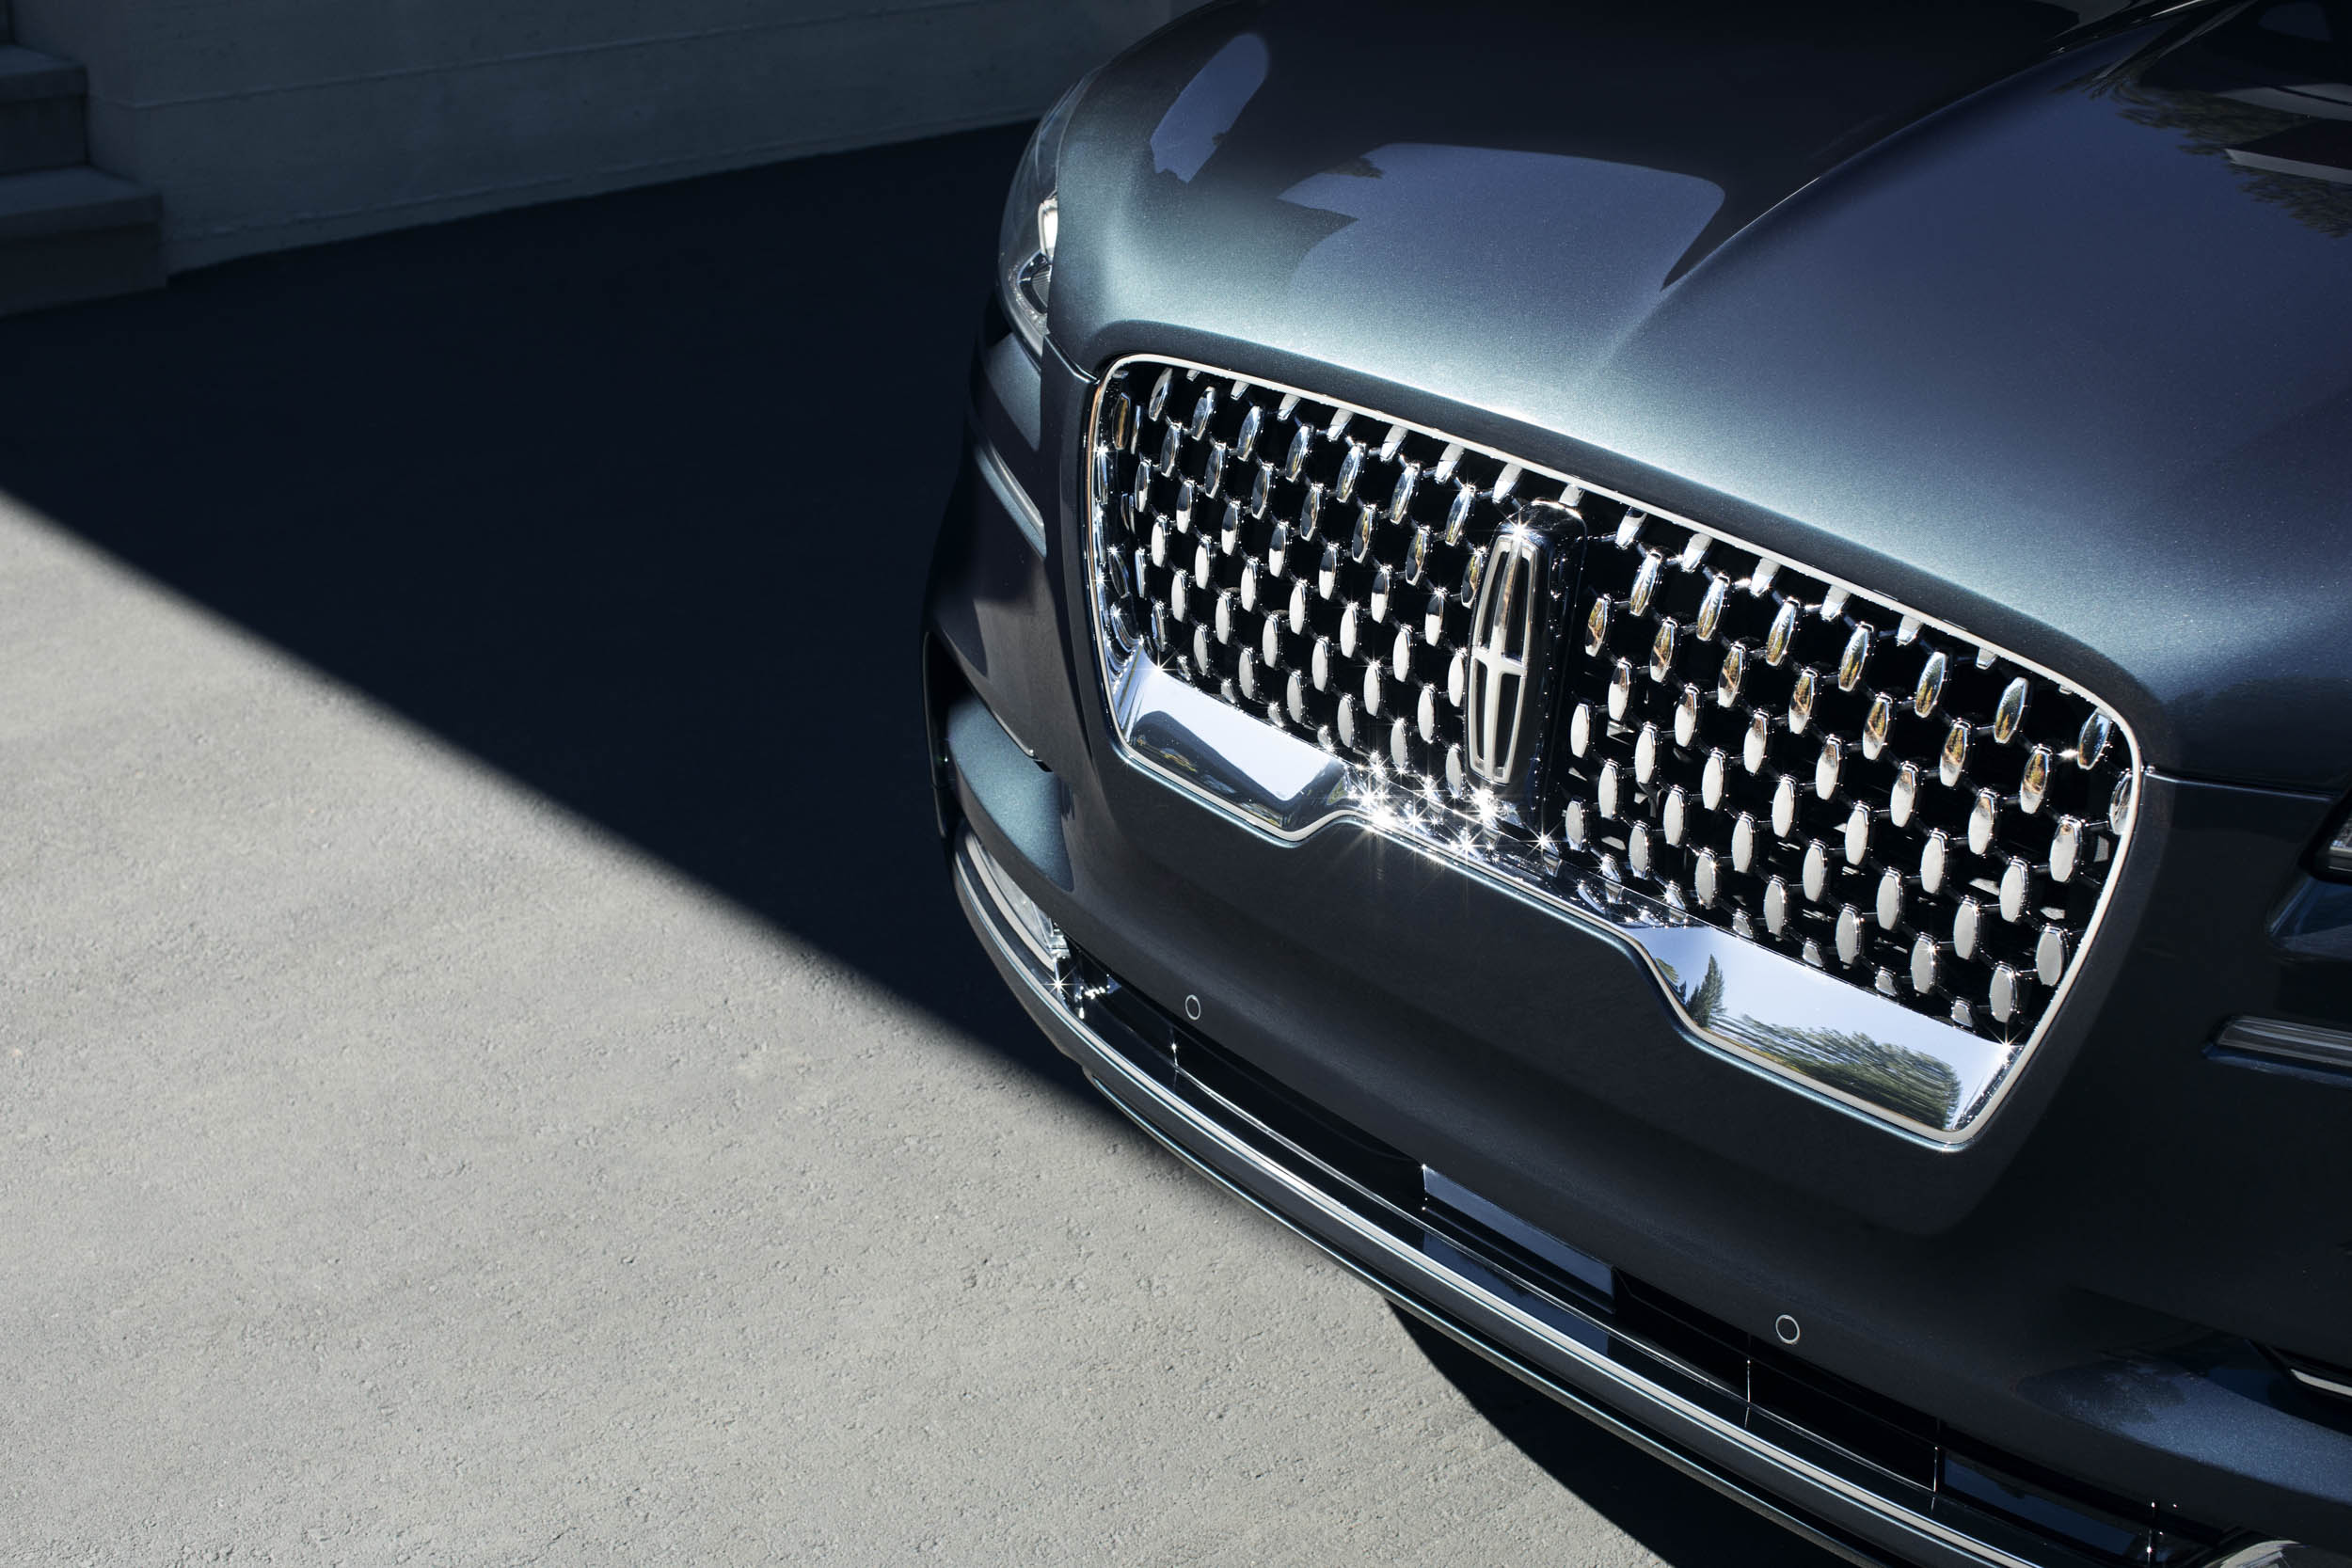 2020 Lincoln Aviator grille detail